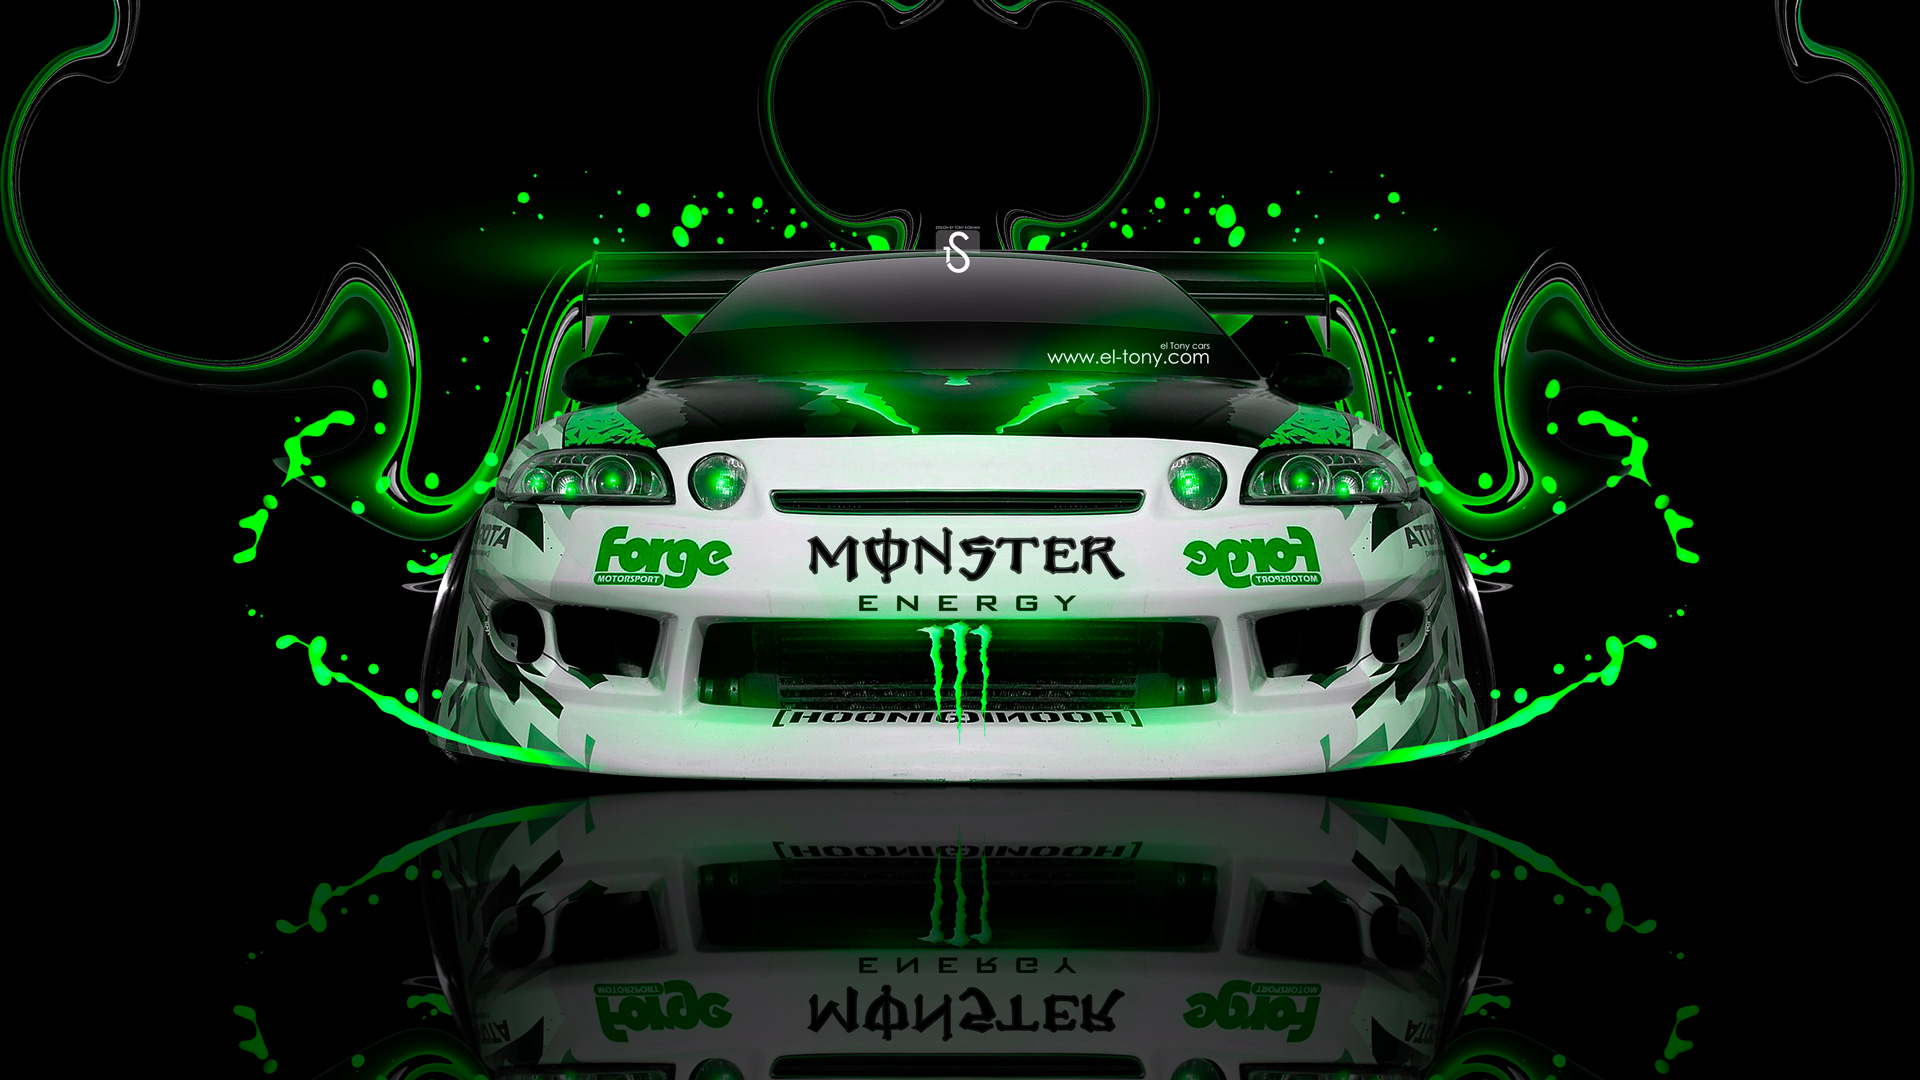 Monster Energy Toyota Soarer Jdm Plastic Car 2014 El Tony